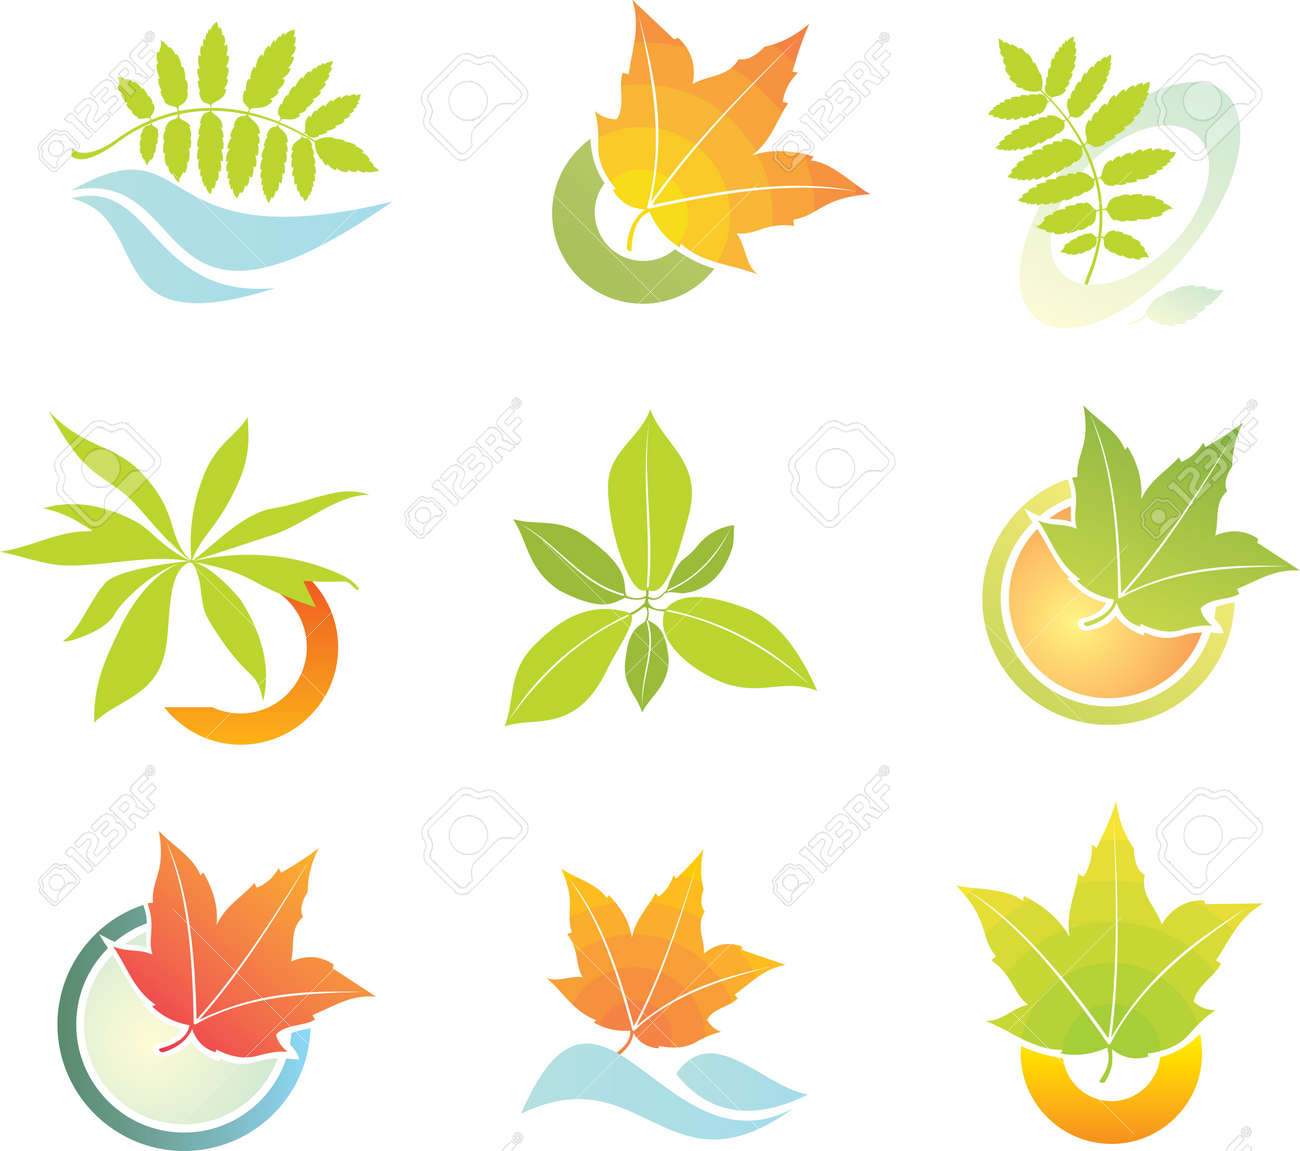 design logo leaf element royalty free cliparts vectors and stock rh 123rf com leaf vector machines leaf vector icon